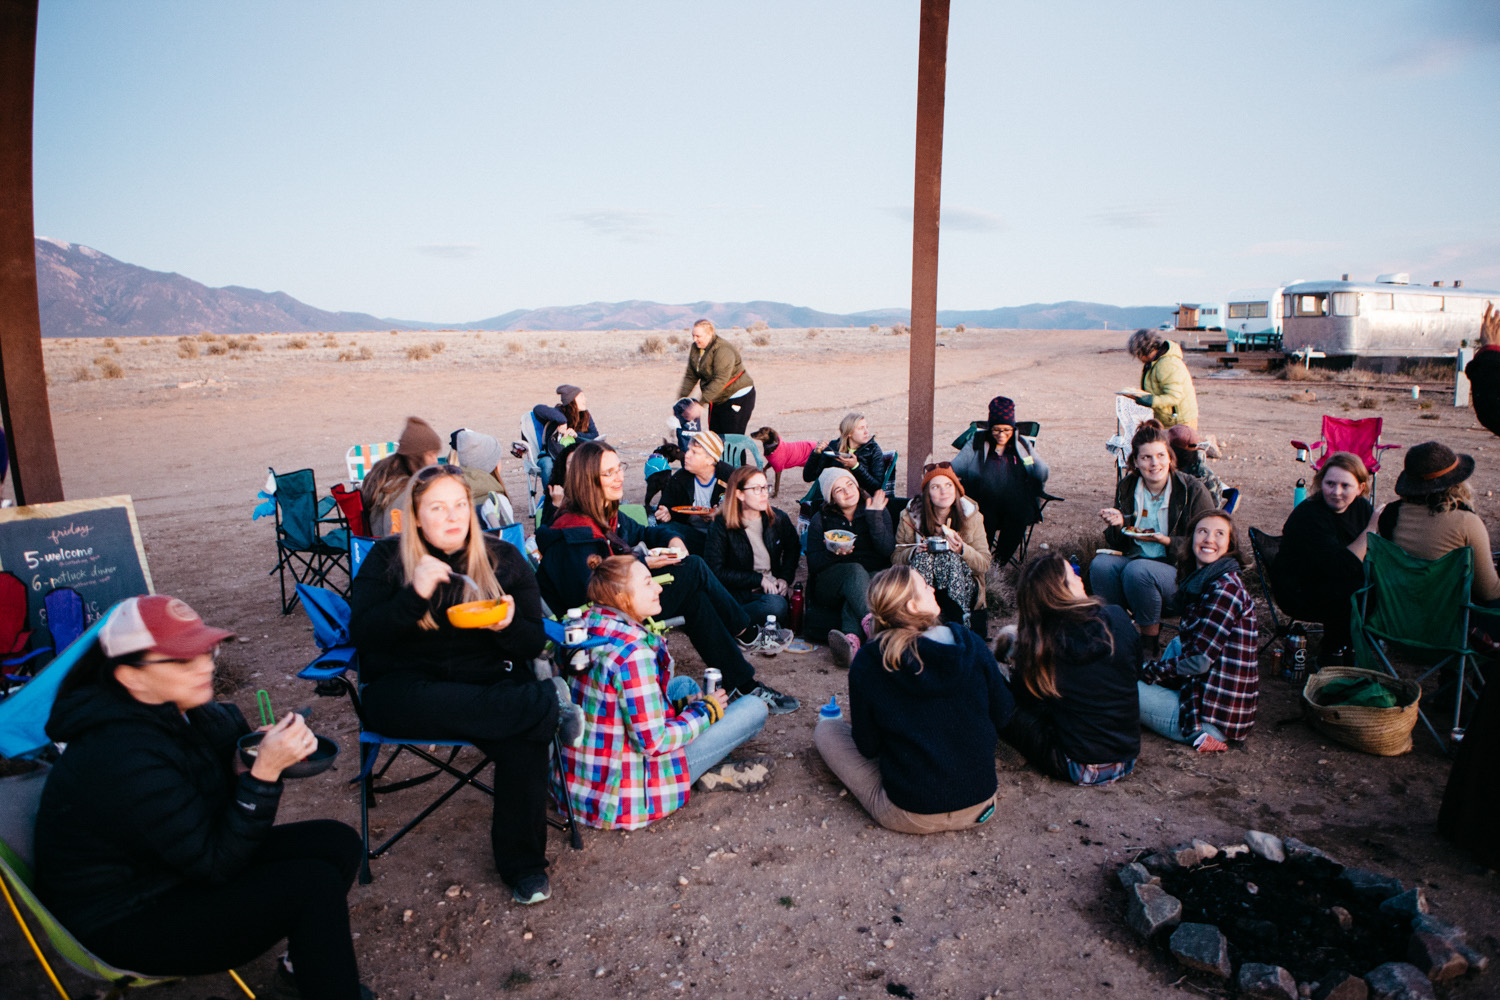 Friday night at the gathering consisted of a potluck dinner before live music by Ira Wolf — photo by Gale Straub